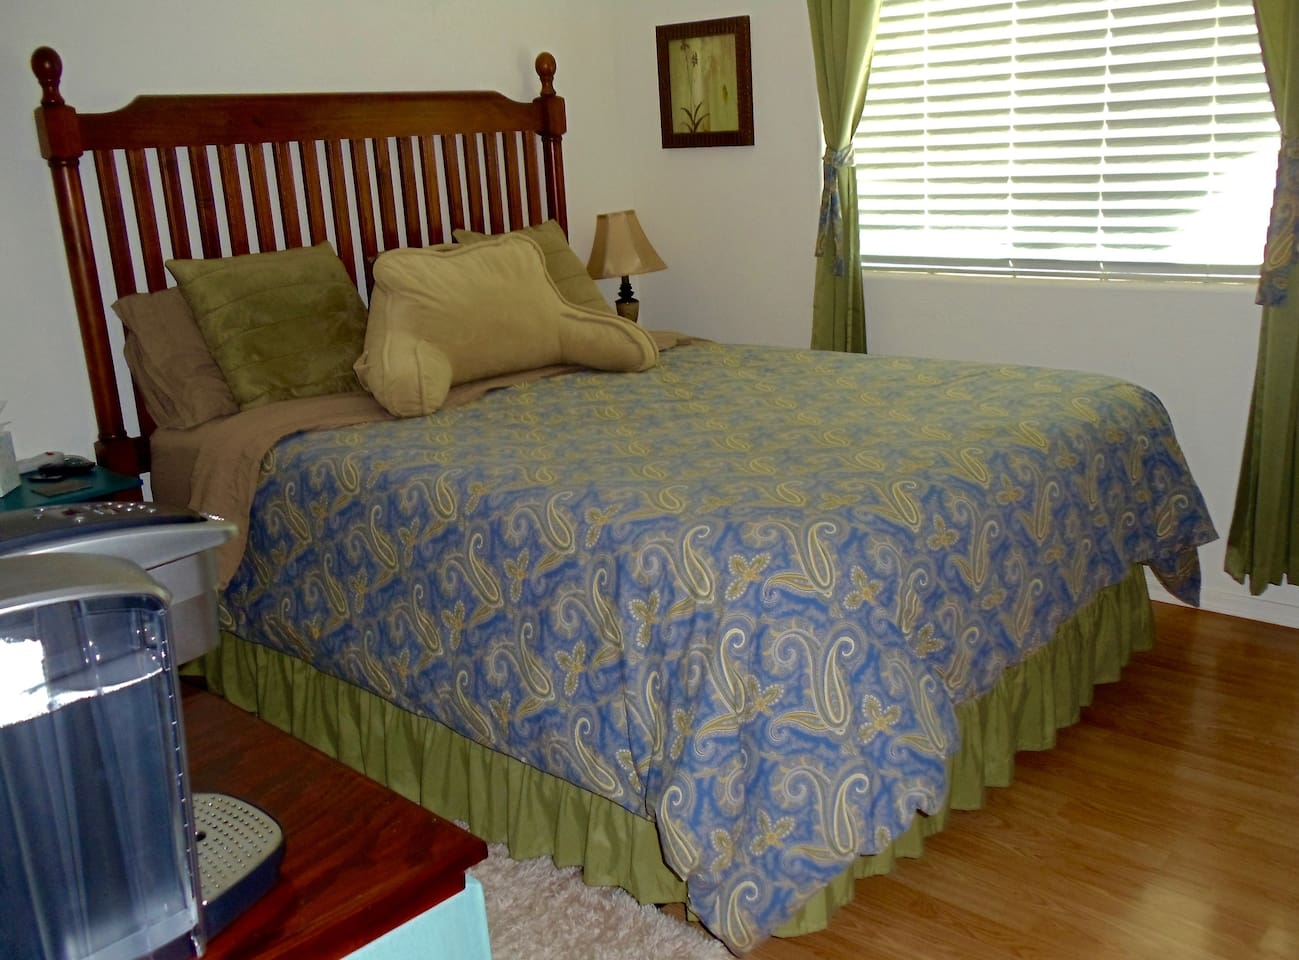 Super comfortable, queen memory foam mattress in immaculately clean, climate controlled room. Fast internet and TV with Netflix, Hulu, and other streaming channels. Room darkening curtains and the song of coyotes to lull you to sleep.